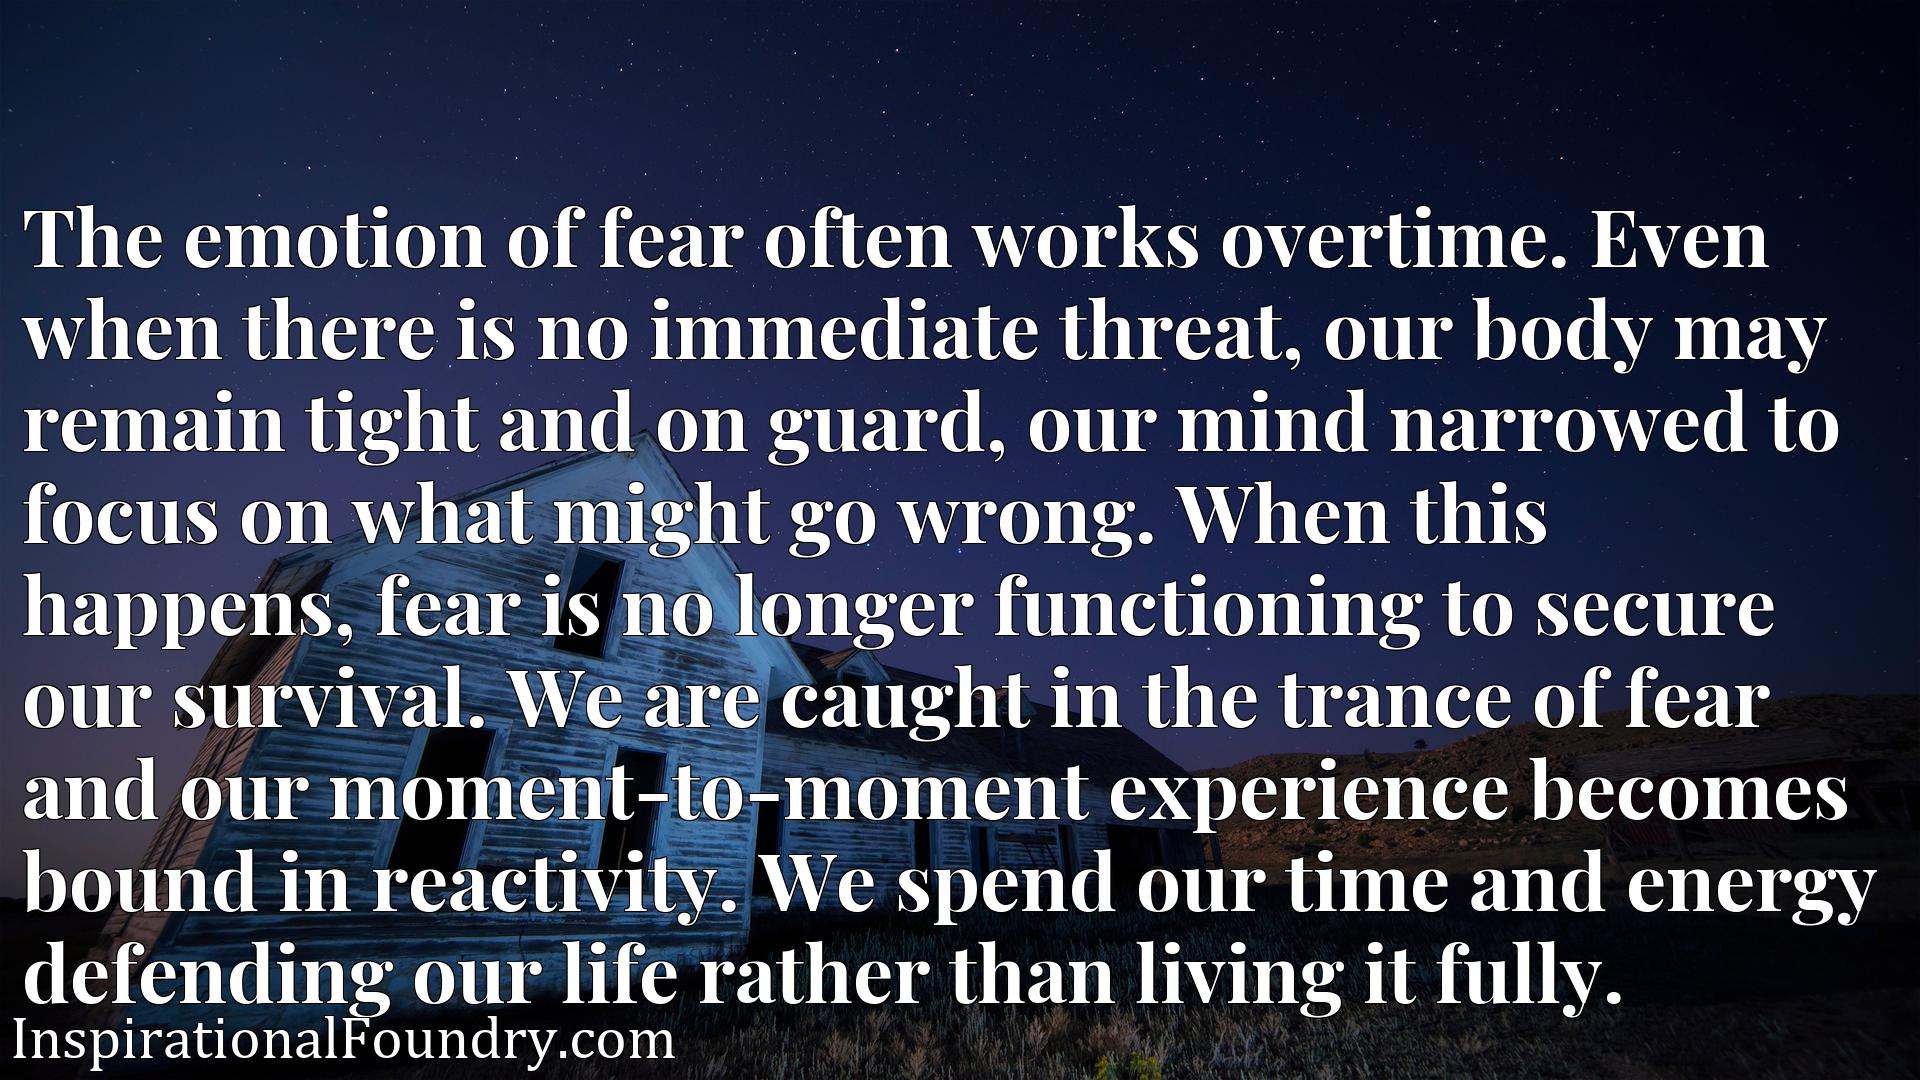 The emotion of fear often works overtime. Even when there is no immediate threat, our body may remain tight and on guard, our mind narrowed to focus on what might go wrong. When this happens, fear is no longer functioning to secure our survival. We are caught in the trance of fear and our moment-to-moment experience becomes bound in reactivity. We spend our time and energy defending our life rather than living it fully.